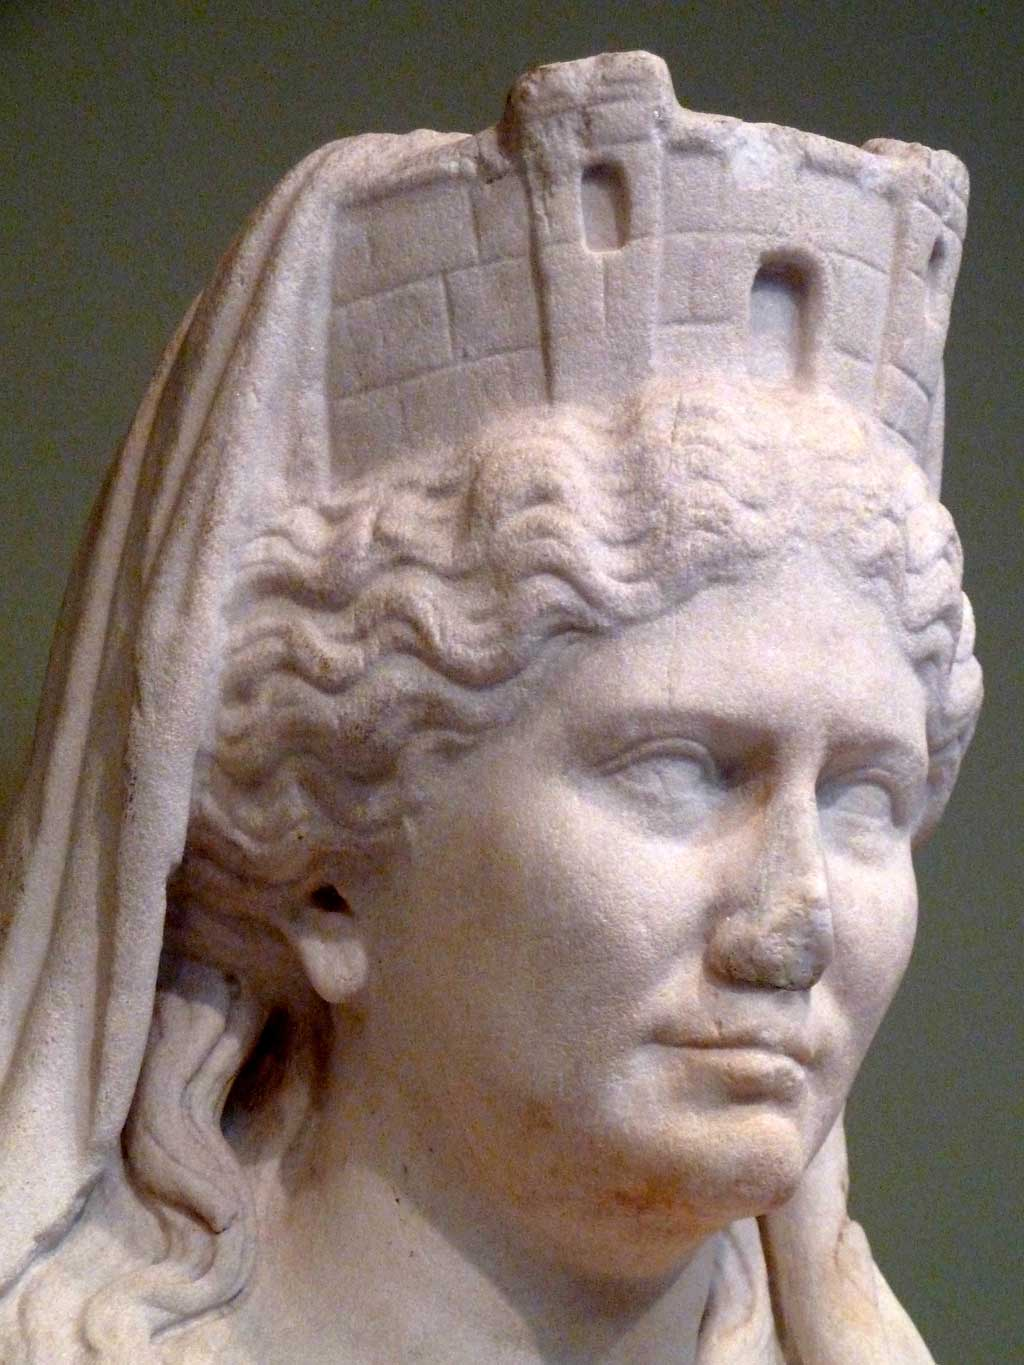 Cybele, the mother goddess, wears a crown in the form of a towered wall, a symbol of her role as protectress of cities, 50 CE, Roman, Getty Villa.